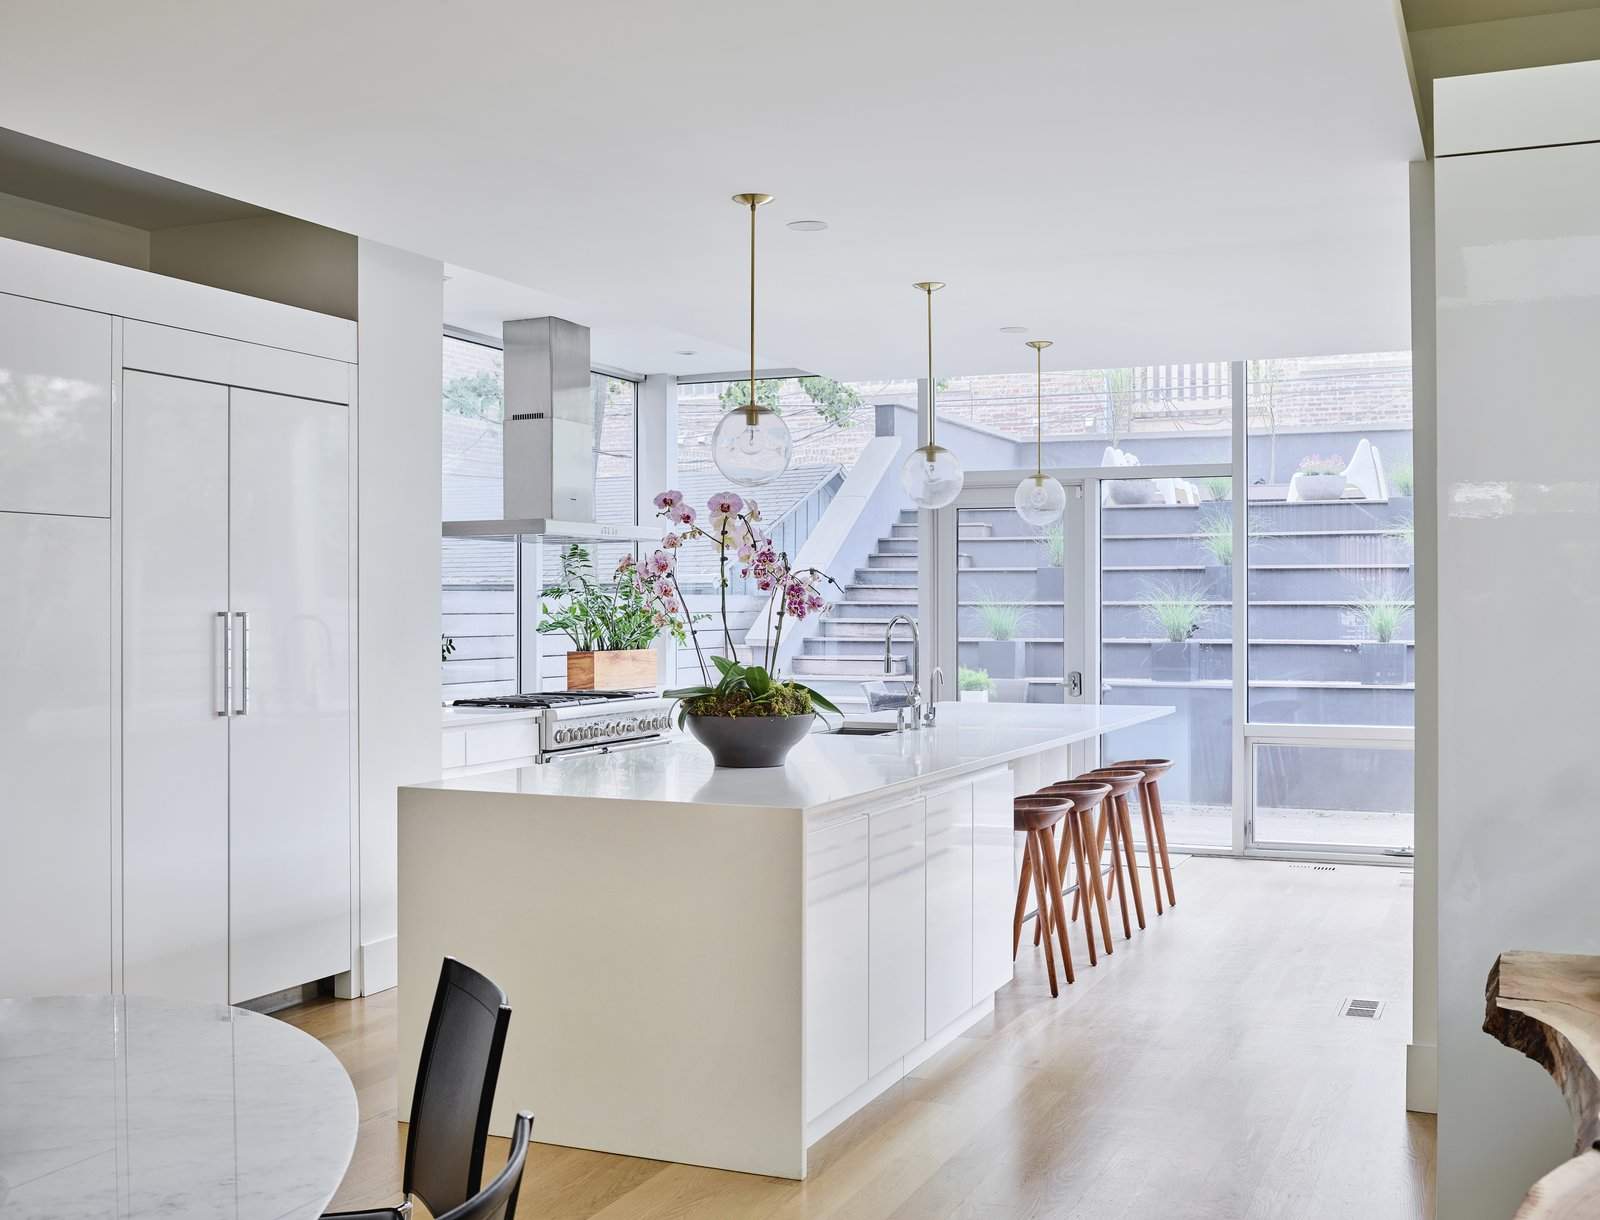 Kitchen, Refrigerator, Pendant Lighting, Light Hardwood Floor, Range, White Cabinet, Range Hood, and Undermount Sink  Photo 9 of 17 in What's the Most Overlooked Feature When Planning a Kitchen Renovation?